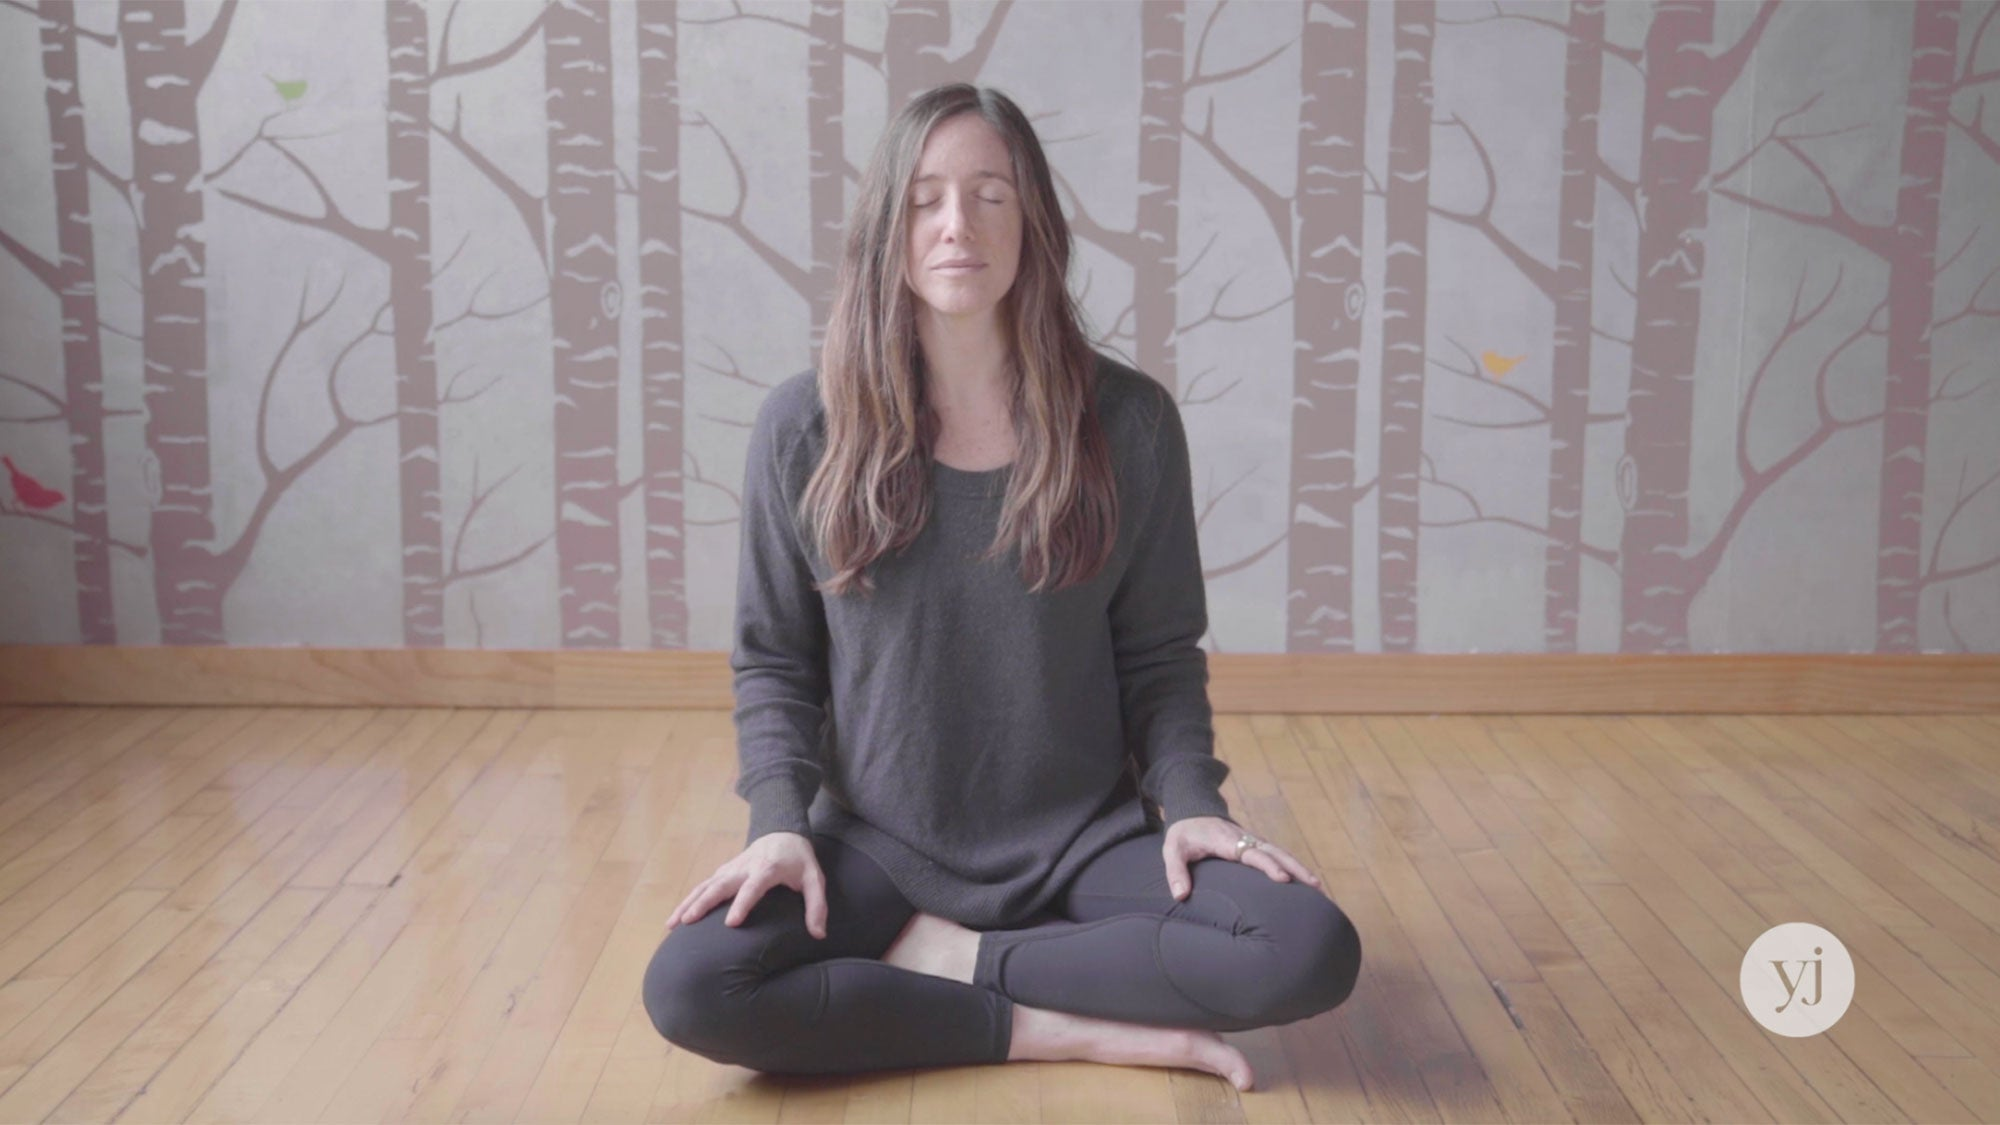 A 5-Minute Meditation To Relieve Financial Stress